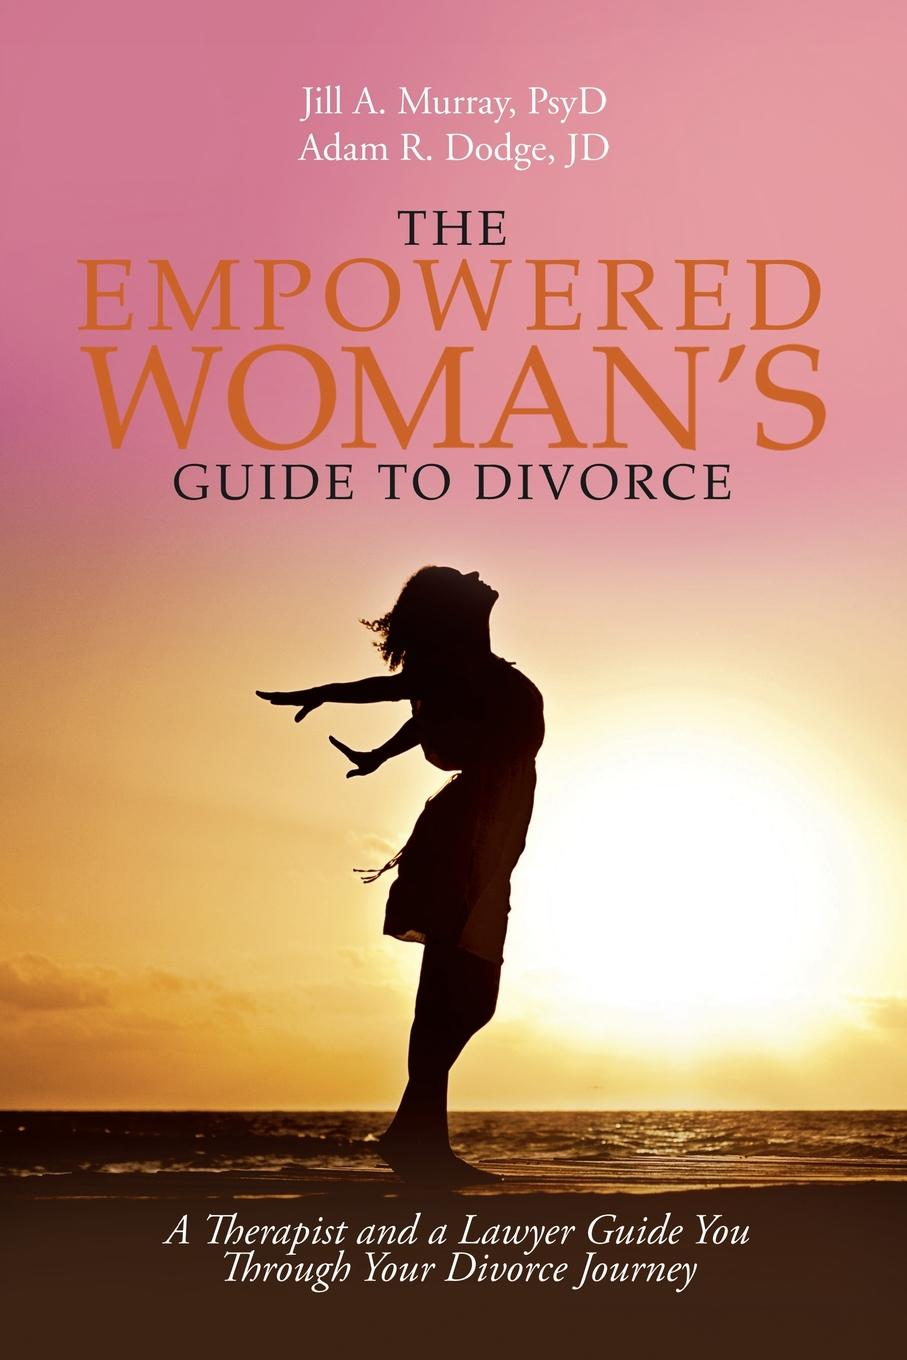 Jill Murray PsyD, Adam Dodge JD The Empowered Woman.s Guide to Divorce. A Therapist and a Lawyer Guide You Through Your Divorce Journey lois brenner robert stein getting your share a woman s guide to successful divorce strategies